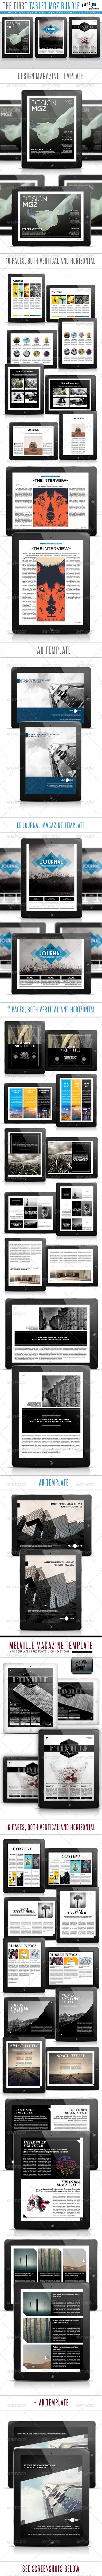 Tablet MGZ Bundle 1 - Digital Magazines ePublishing